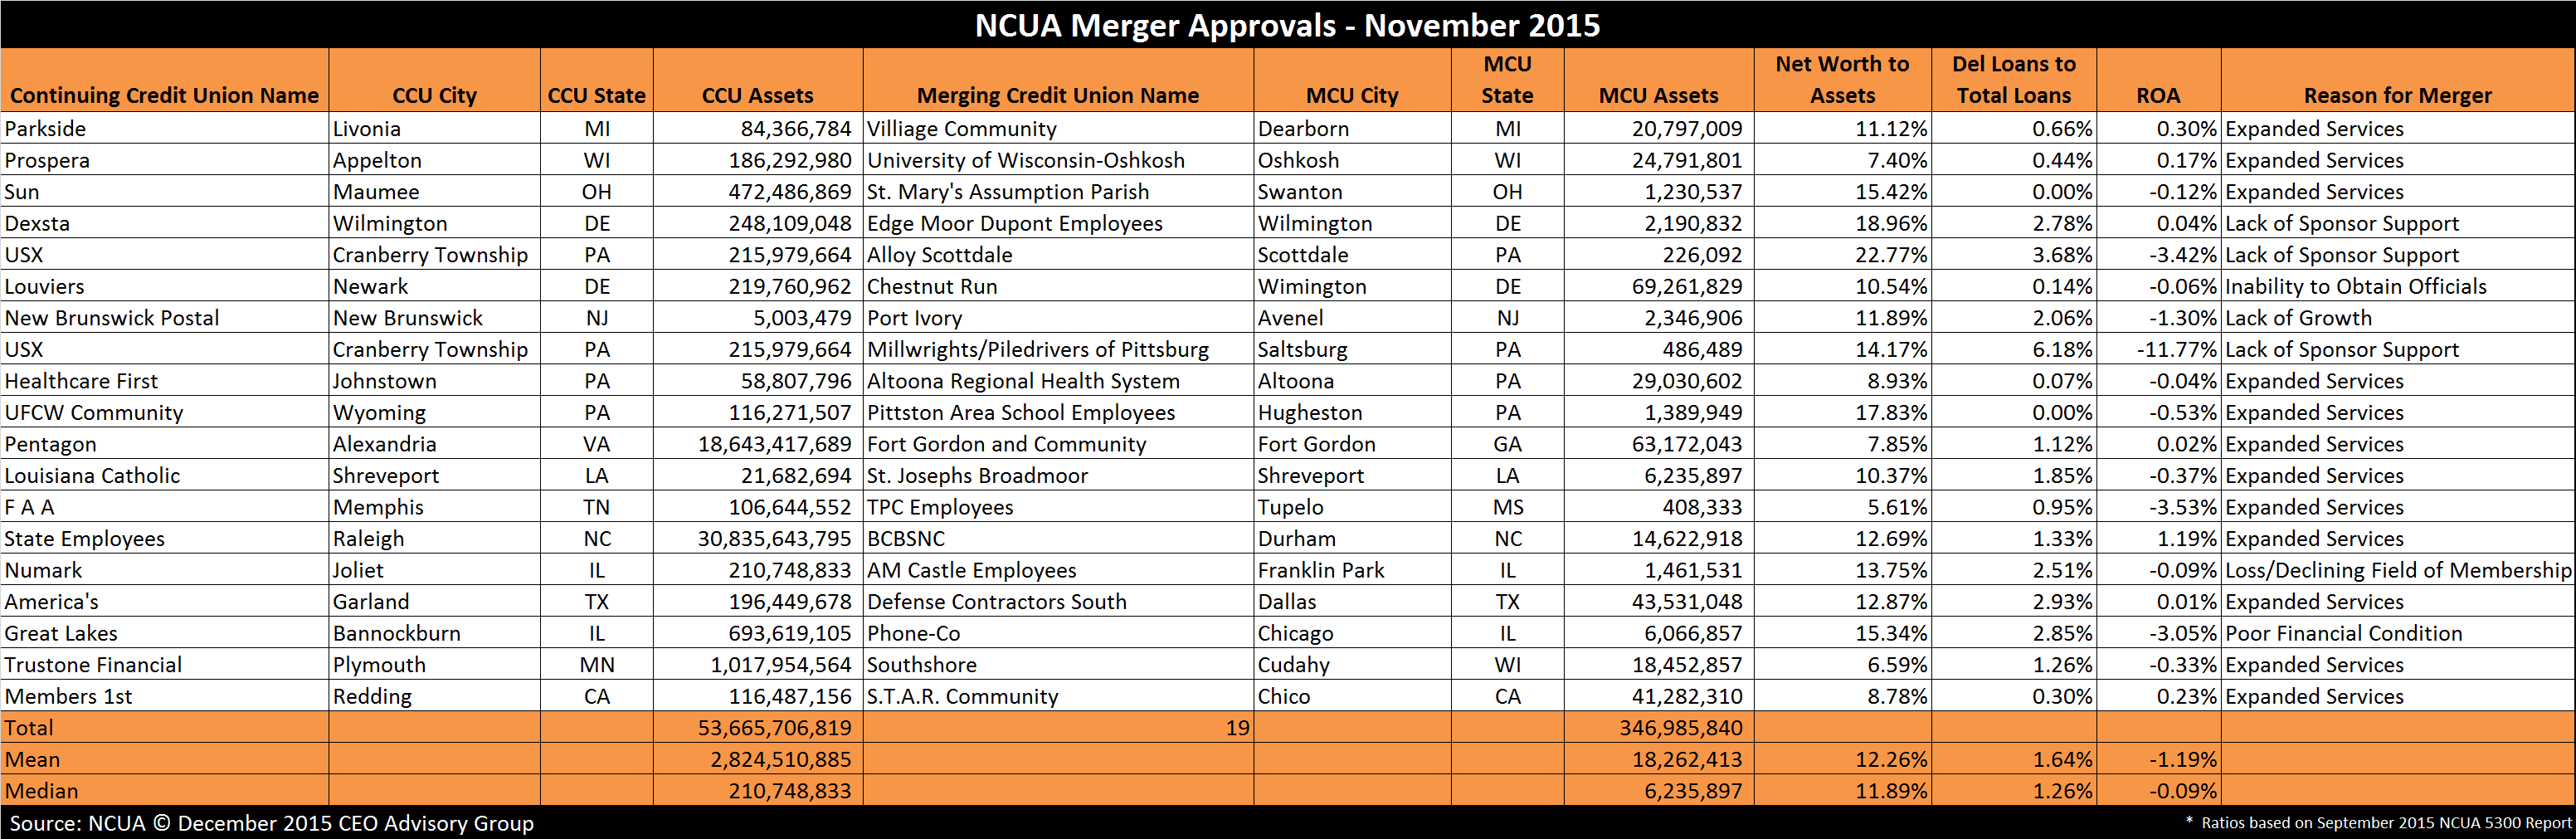 NCUA Credit Union Merger Approvals - November 2015